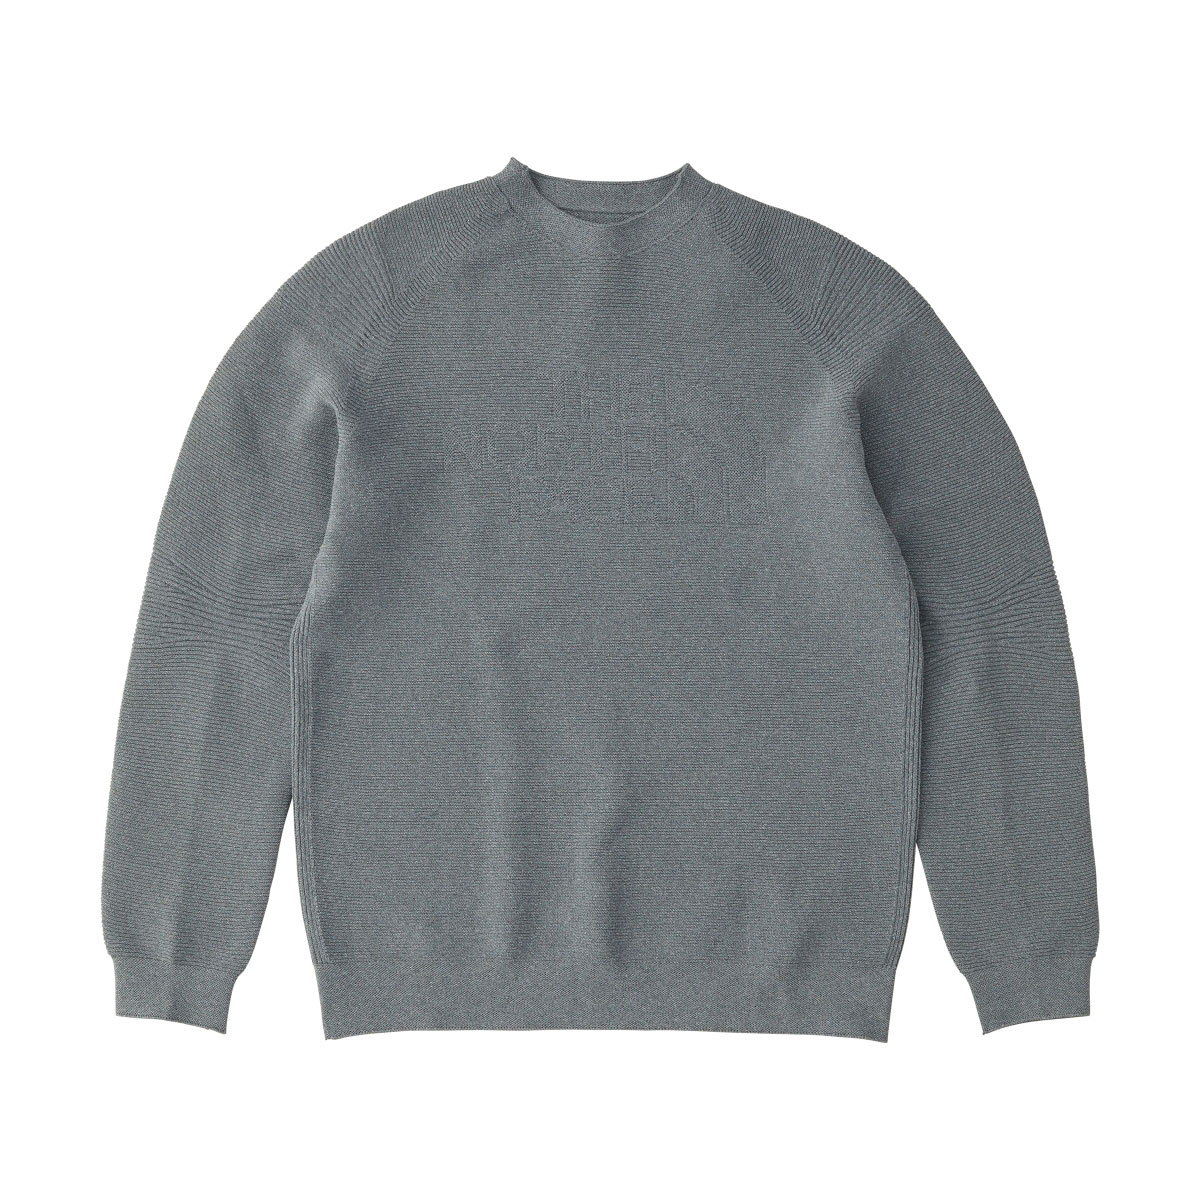 609343573 THE NORTH FACE L/S GLOBEFIT CREW (the North Face L/S glove fitting crew)  (mixture H) 18SP-I